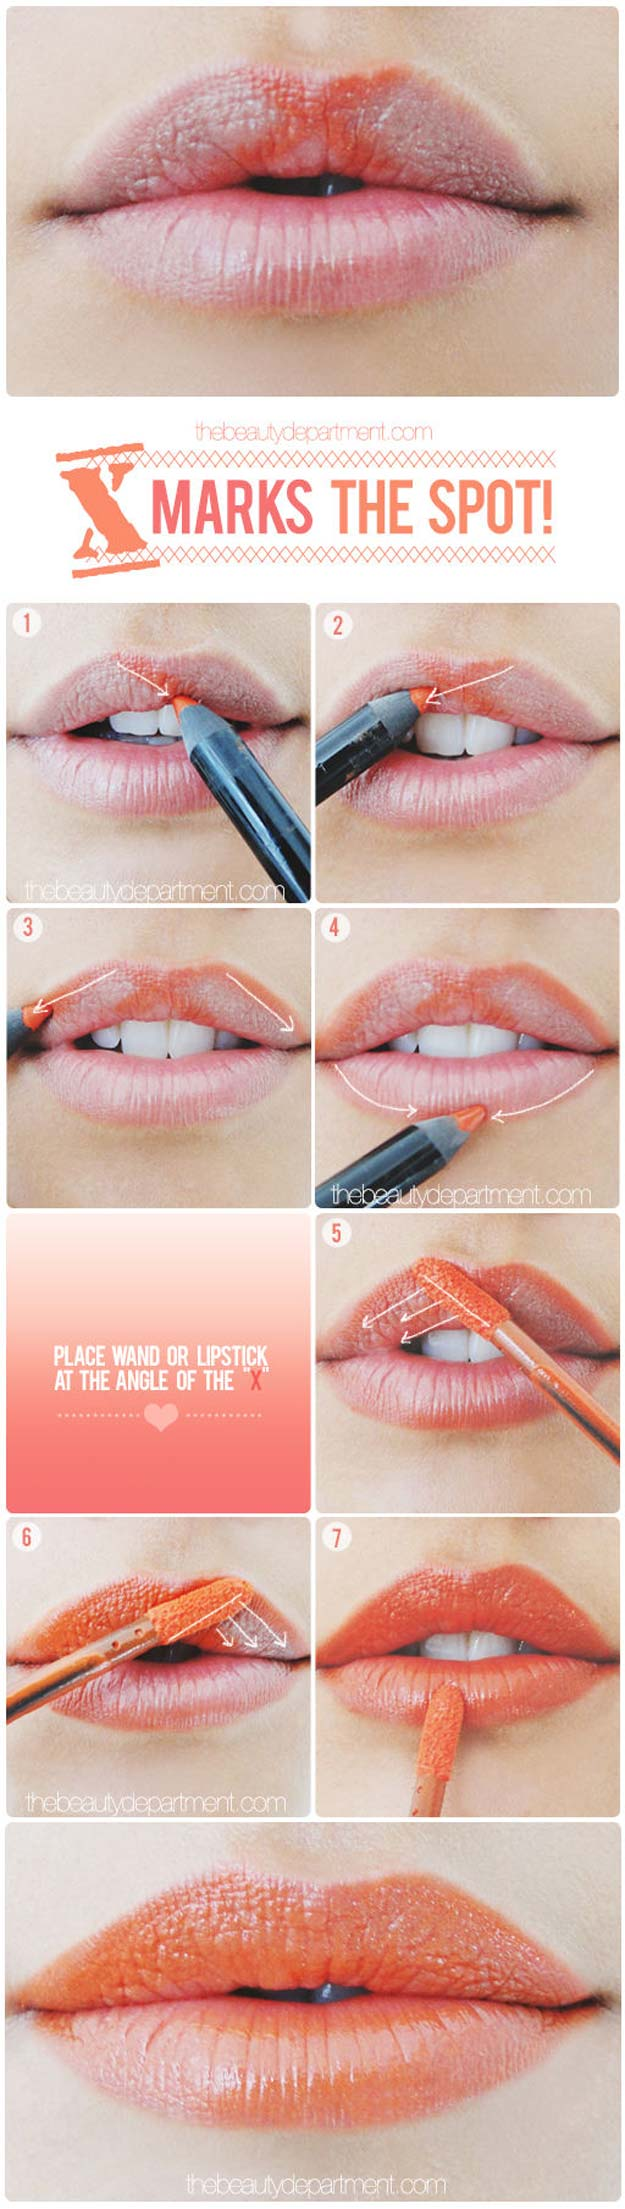 Lipstick Tutorials - Best Step by Step Makeup Tutorial How To - A Little Lip Trick - Easy and Quick Ways to Apply Lipstick and Awesome Beauty Ideas - Cool Ideas for Teen Makeup for School, Party and Special Occasion - Makeup Tutorials for Beginners - Lip Liner Tips and Tricks to Add Volume, DIY Lip Techniques for Fuller Lips - DIY Projects and Crafts for Teens